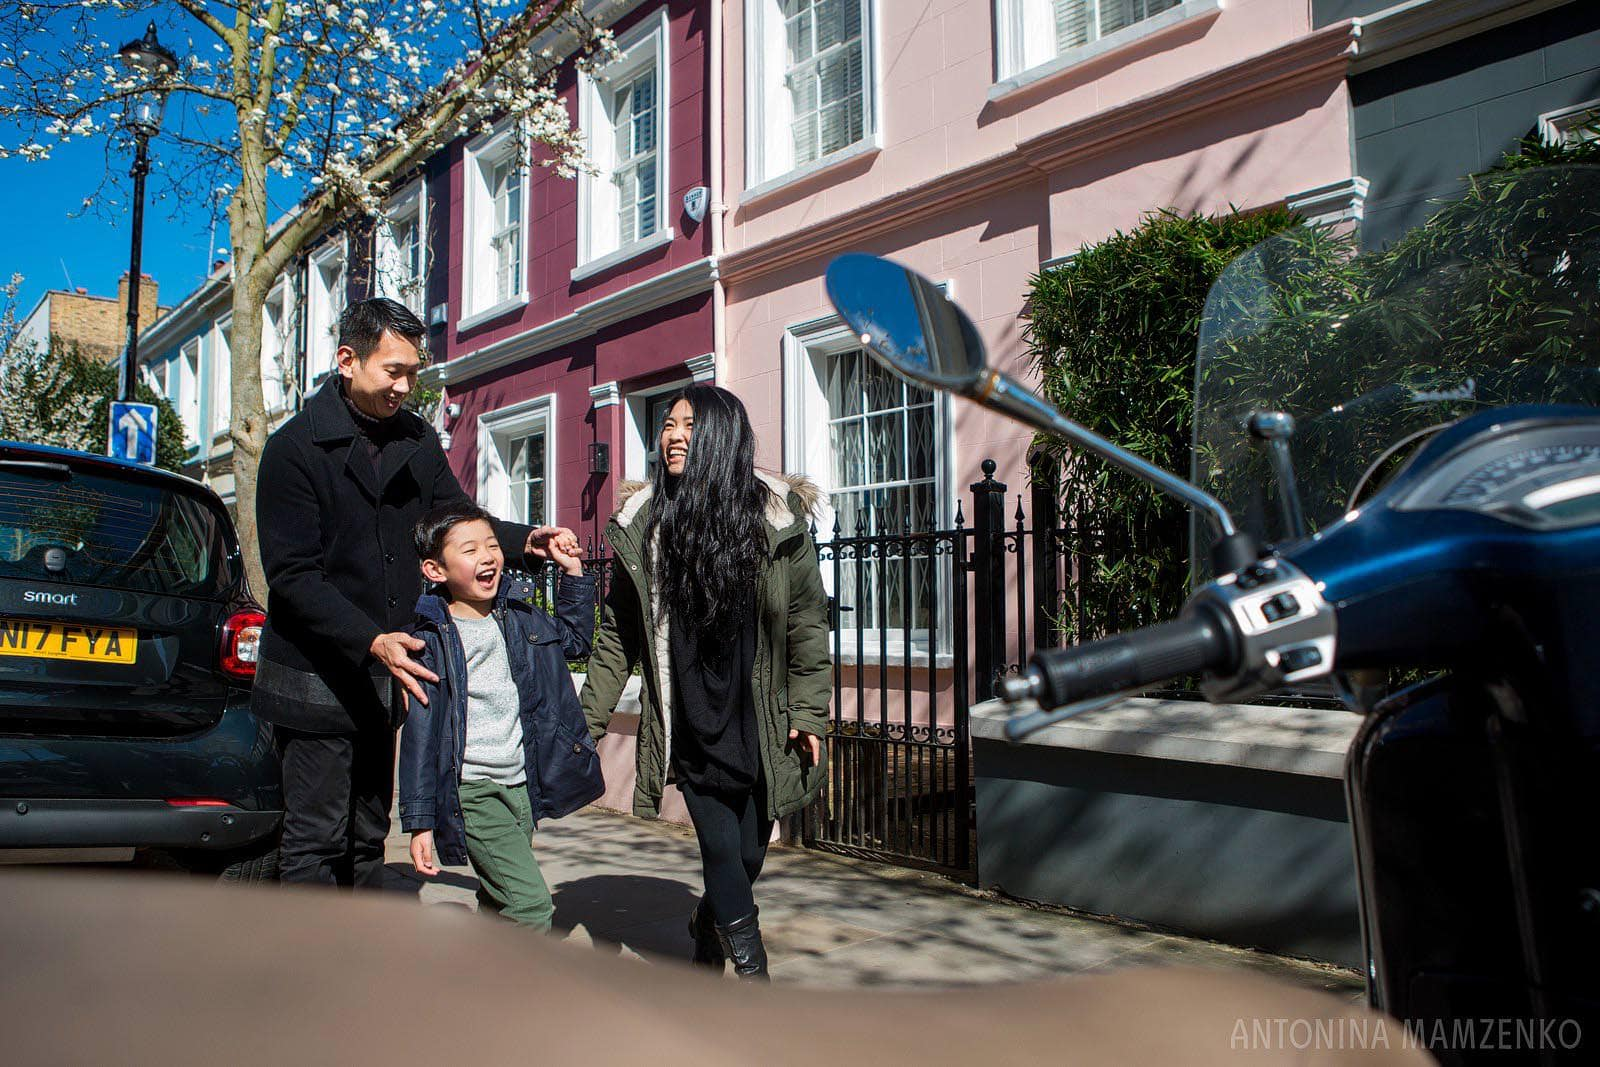 a family enjoying their time together with colourful houses in Notting Hill providing a great backdrop to the photograph